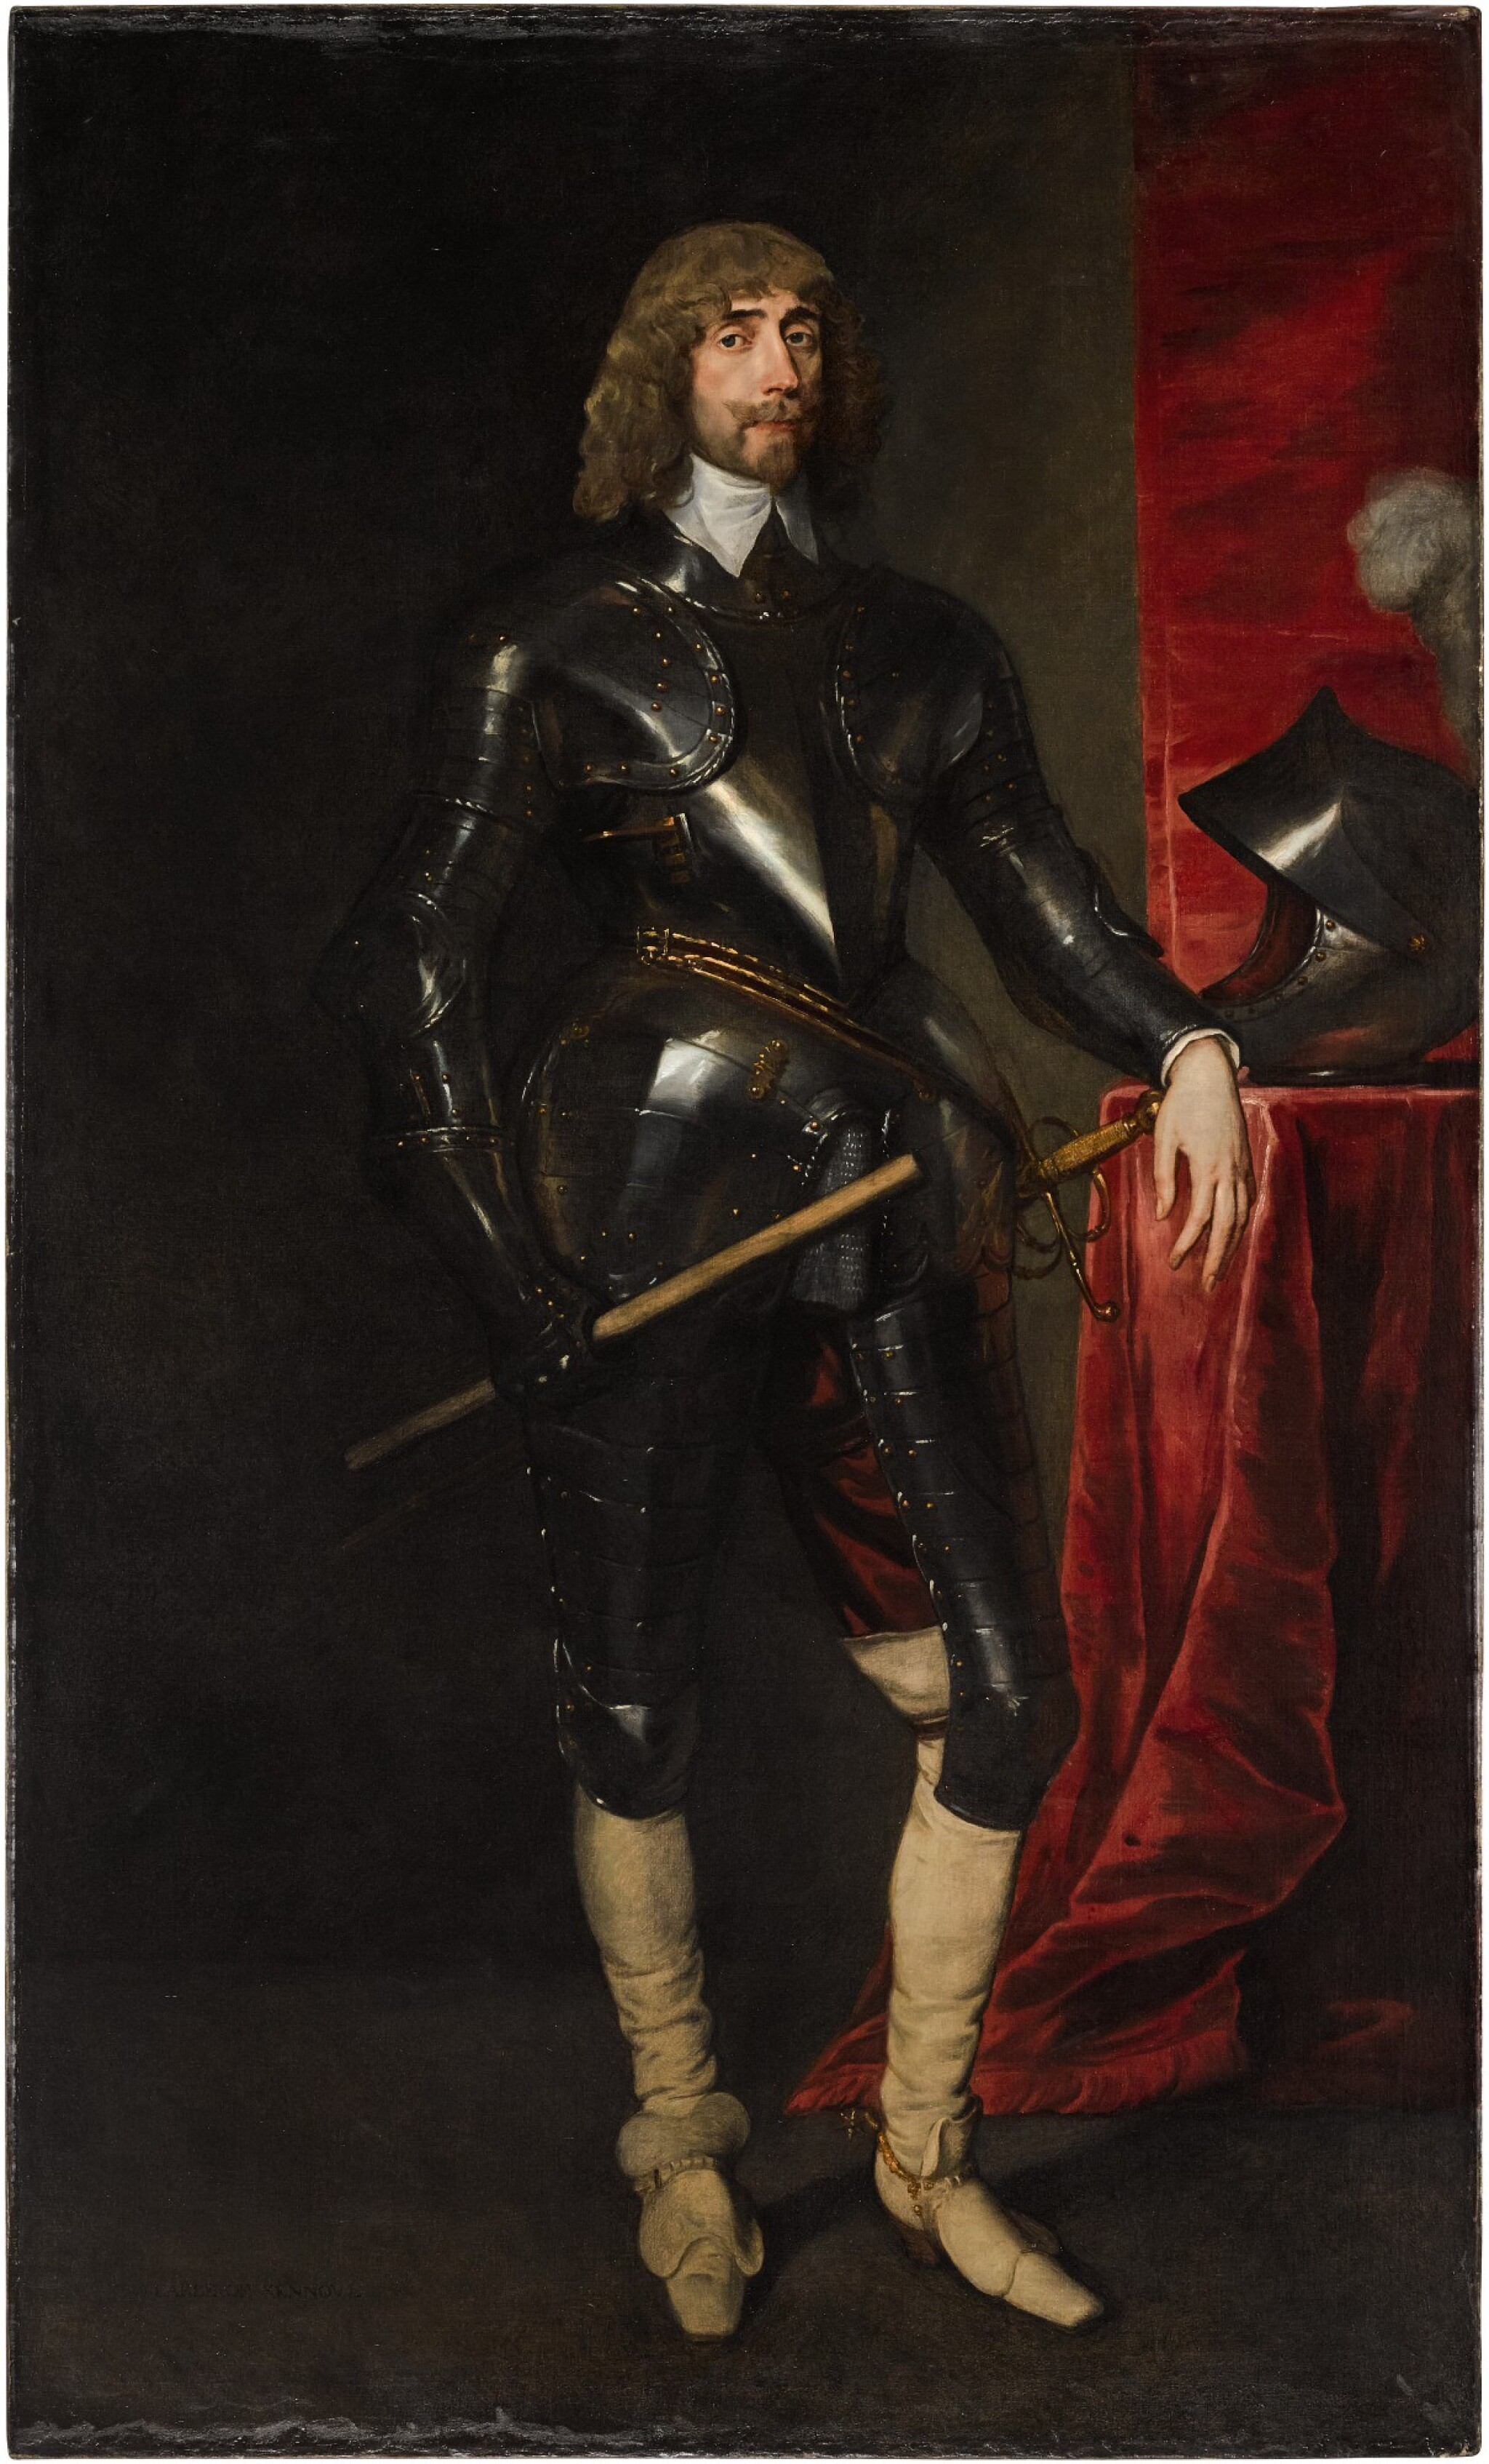 View 1 of Lot 26. Portrait of George Hay, 2nd Earl of Kinnoull (circa 1595–1644), full-length, wearing armour, and holding a baton in his right hand, his left resting on a table with a red cloth, upon which is his helmet | 《喬治・黑伊,金諾伯爵二世(約1595-1644年)身披鎧甲、右手持棍、左手搭在桌邊的全身肖像,桌上鋪紅色桌布並擺放頭盔》.